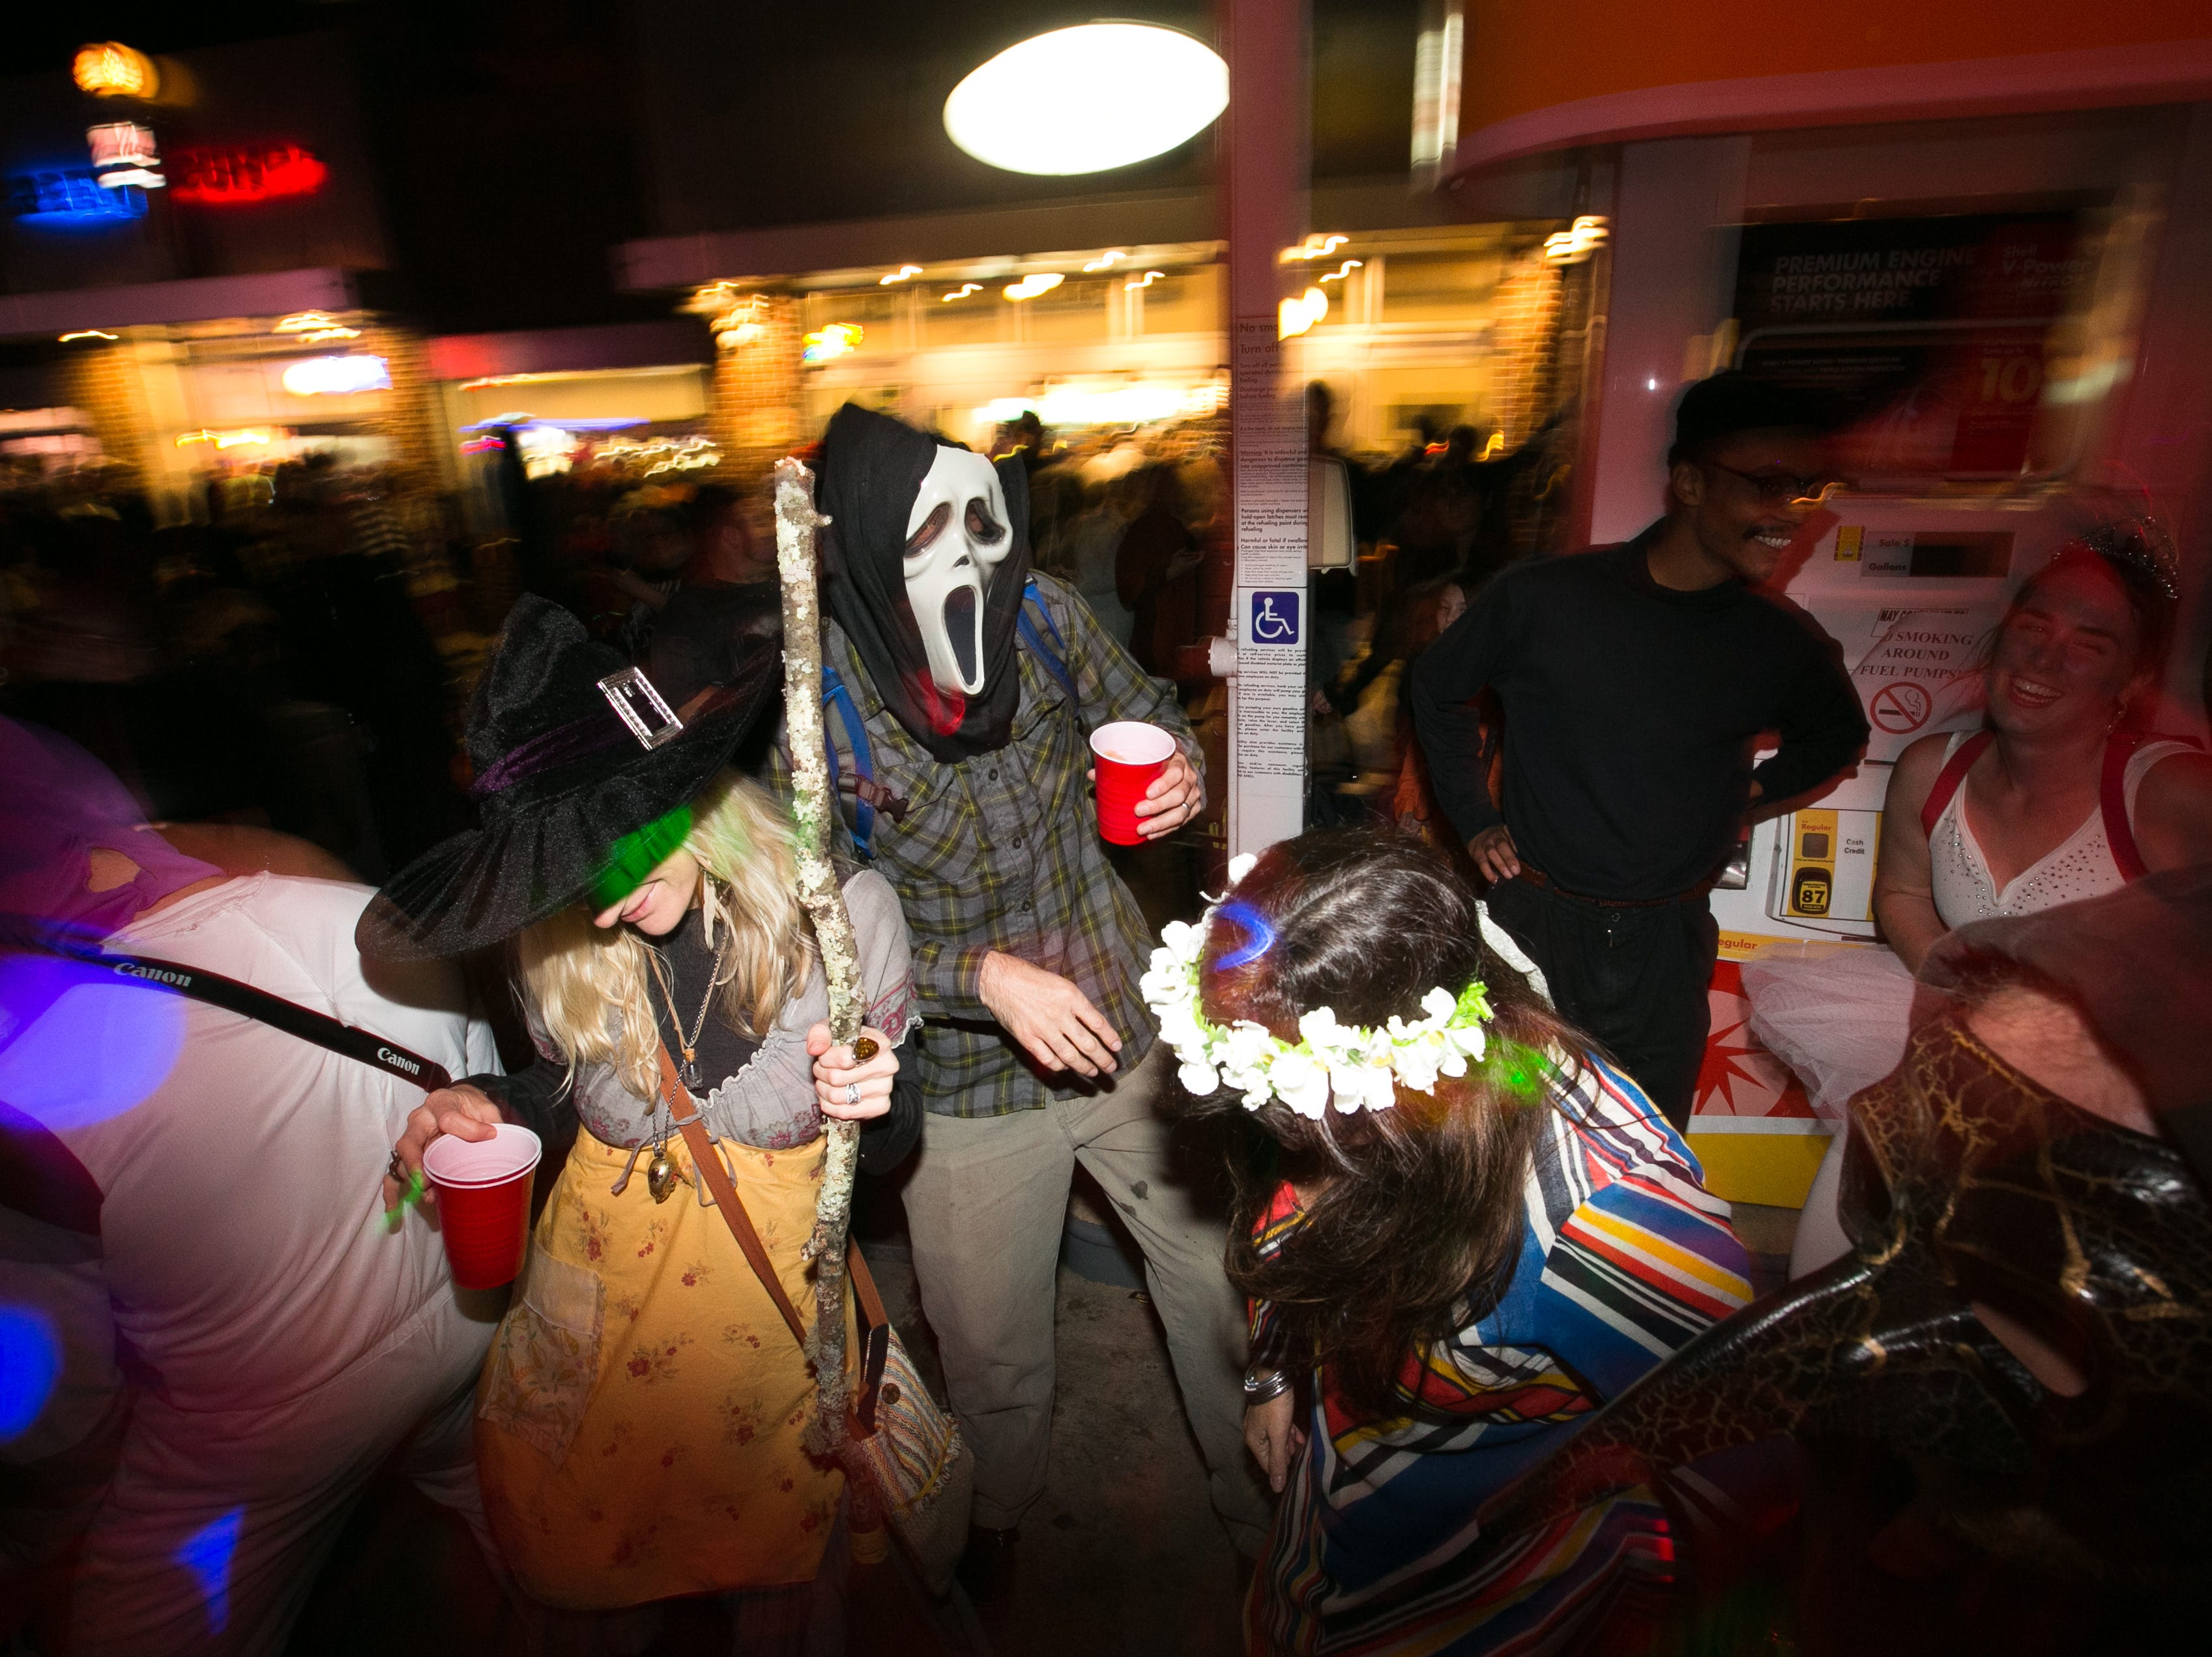 Halloween celebrations at the Brew Pump on Haywood Road in West Asheville on Oct. 31, 2018.